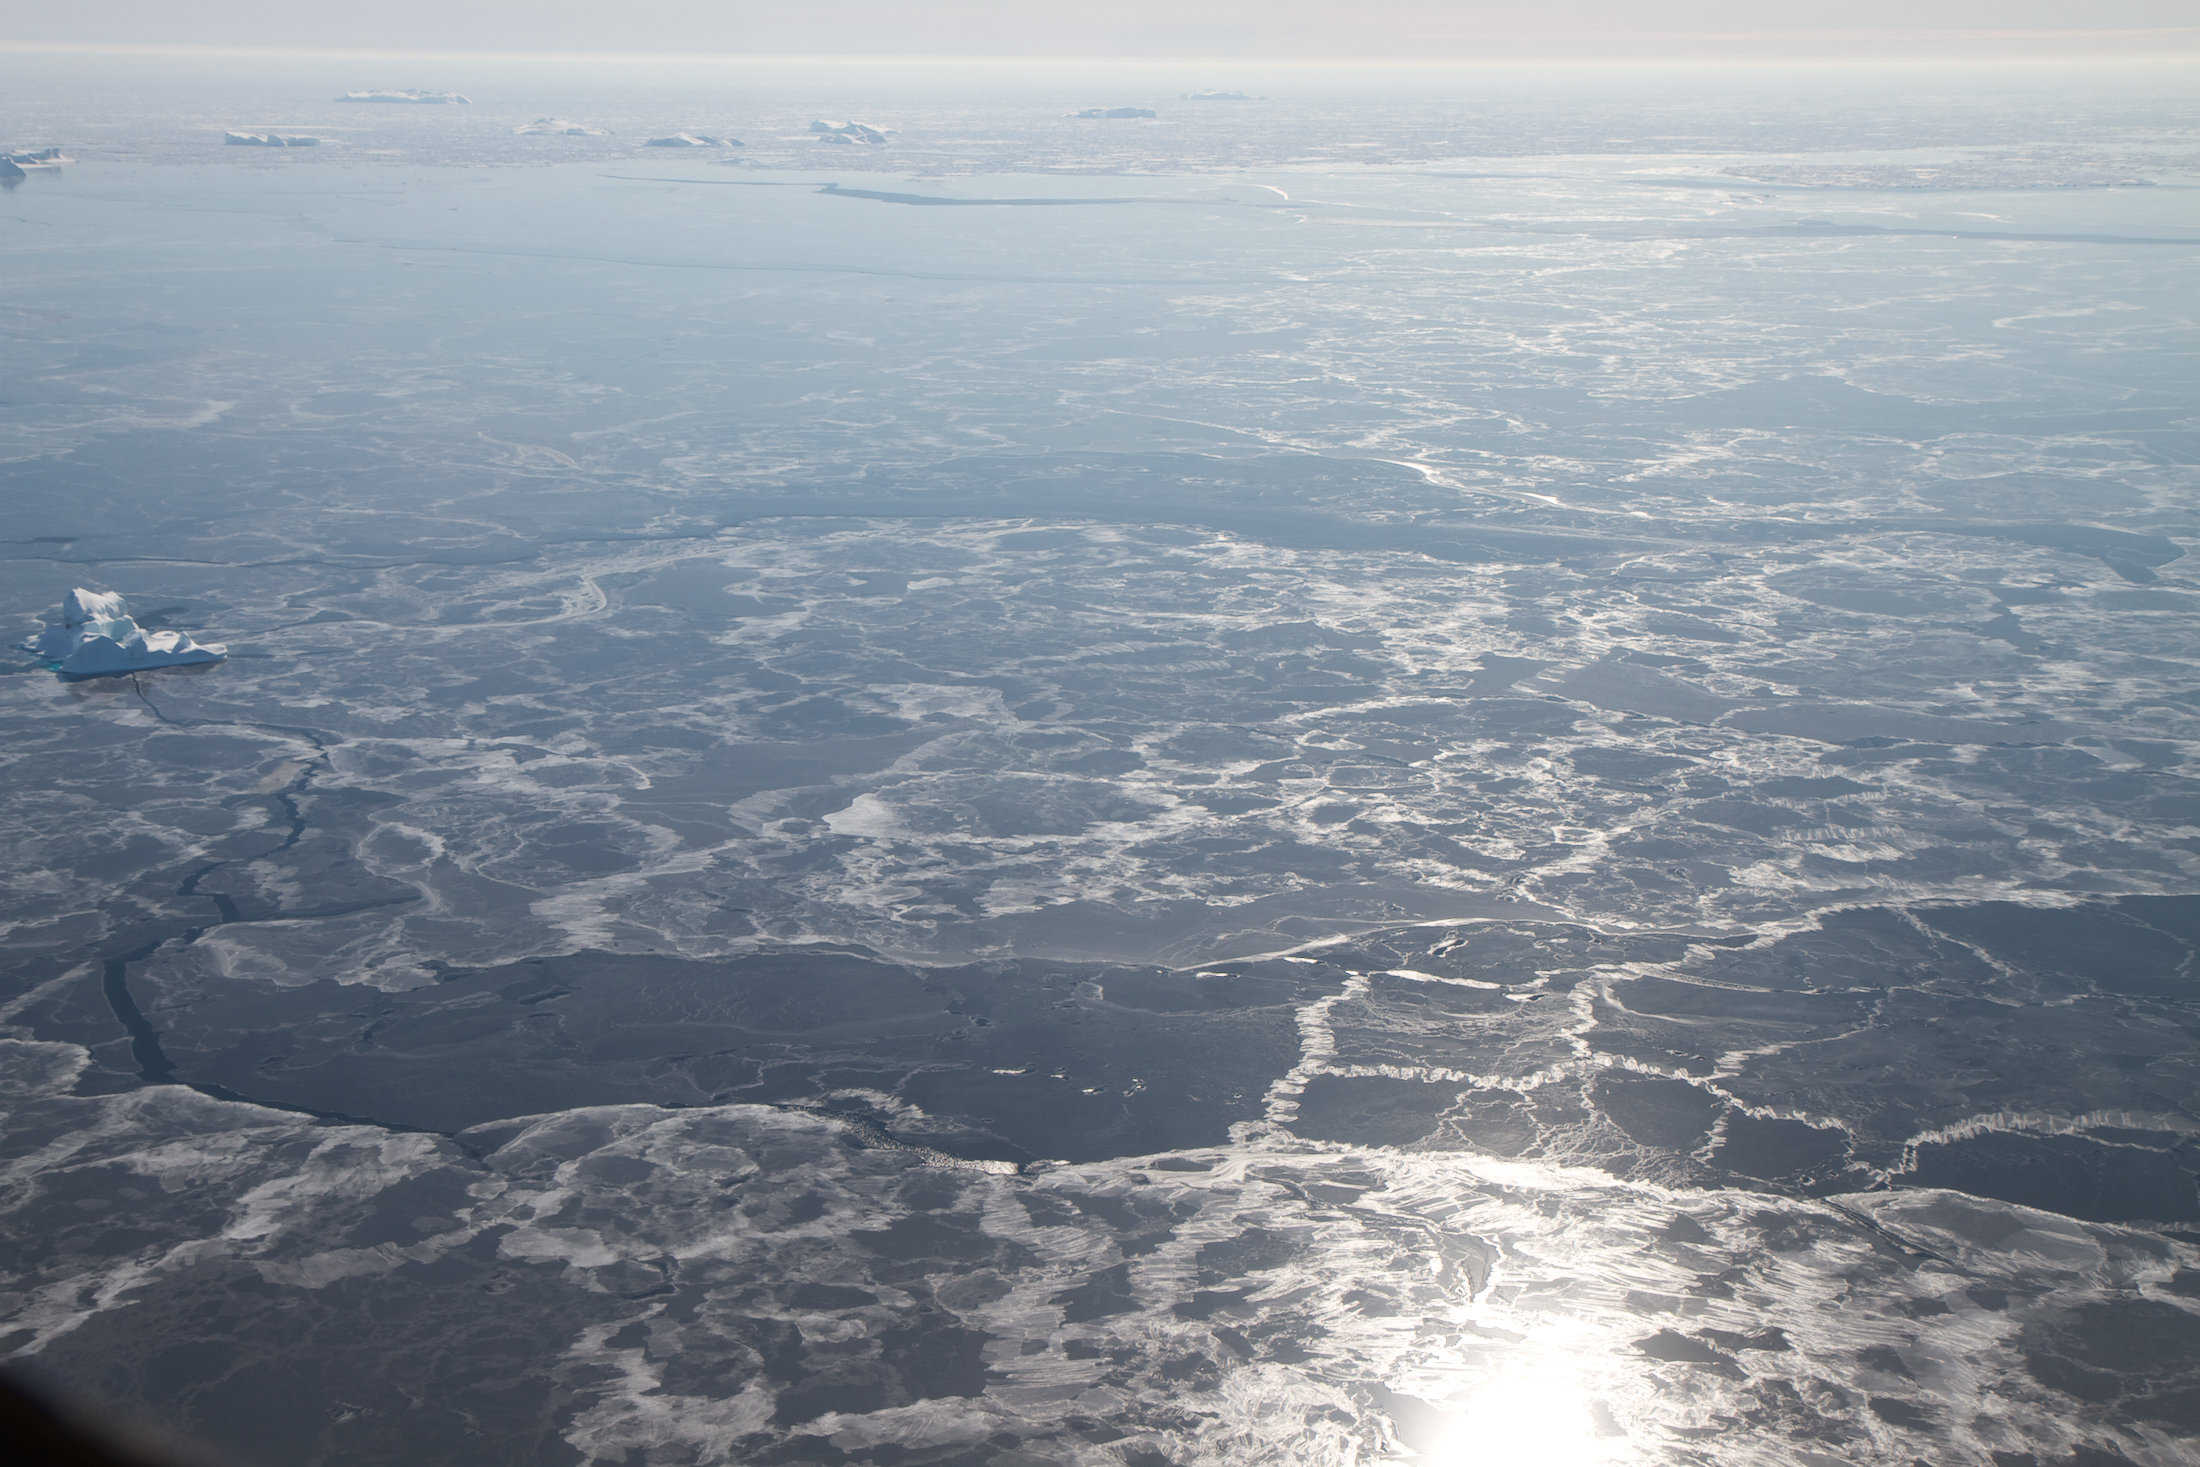 Nasa icebridge arctic 2012 the sun reflects over thin sea ice and a few floating ice bergs near the denmark publicscrutiny Images